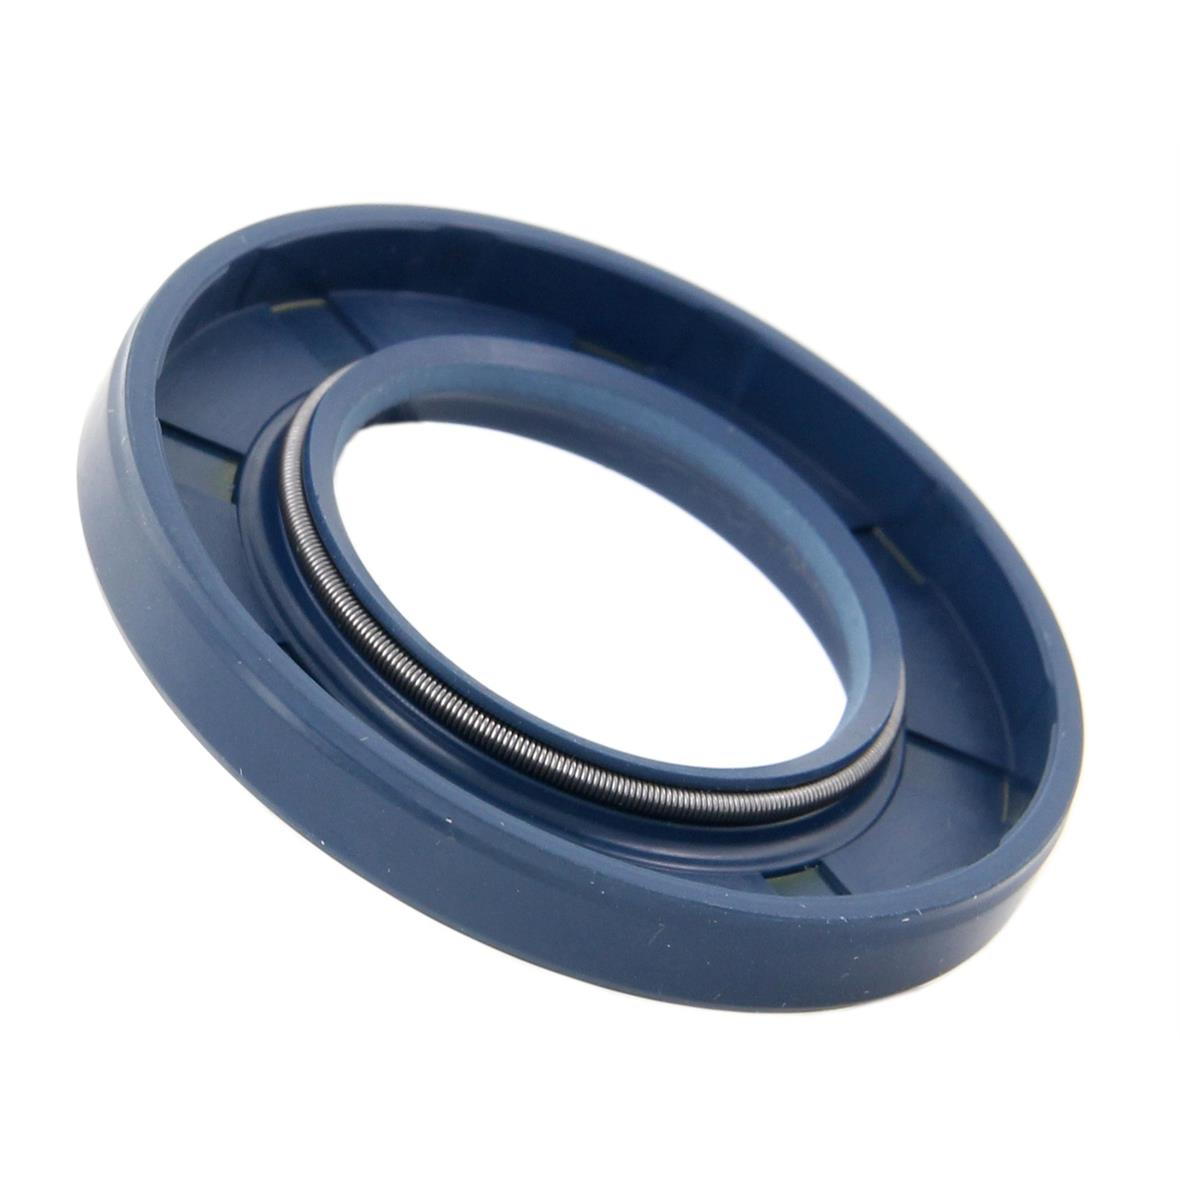 Product Image for 'Oil Seal driveshaft CORTECO 27x47x6 mmTitle'